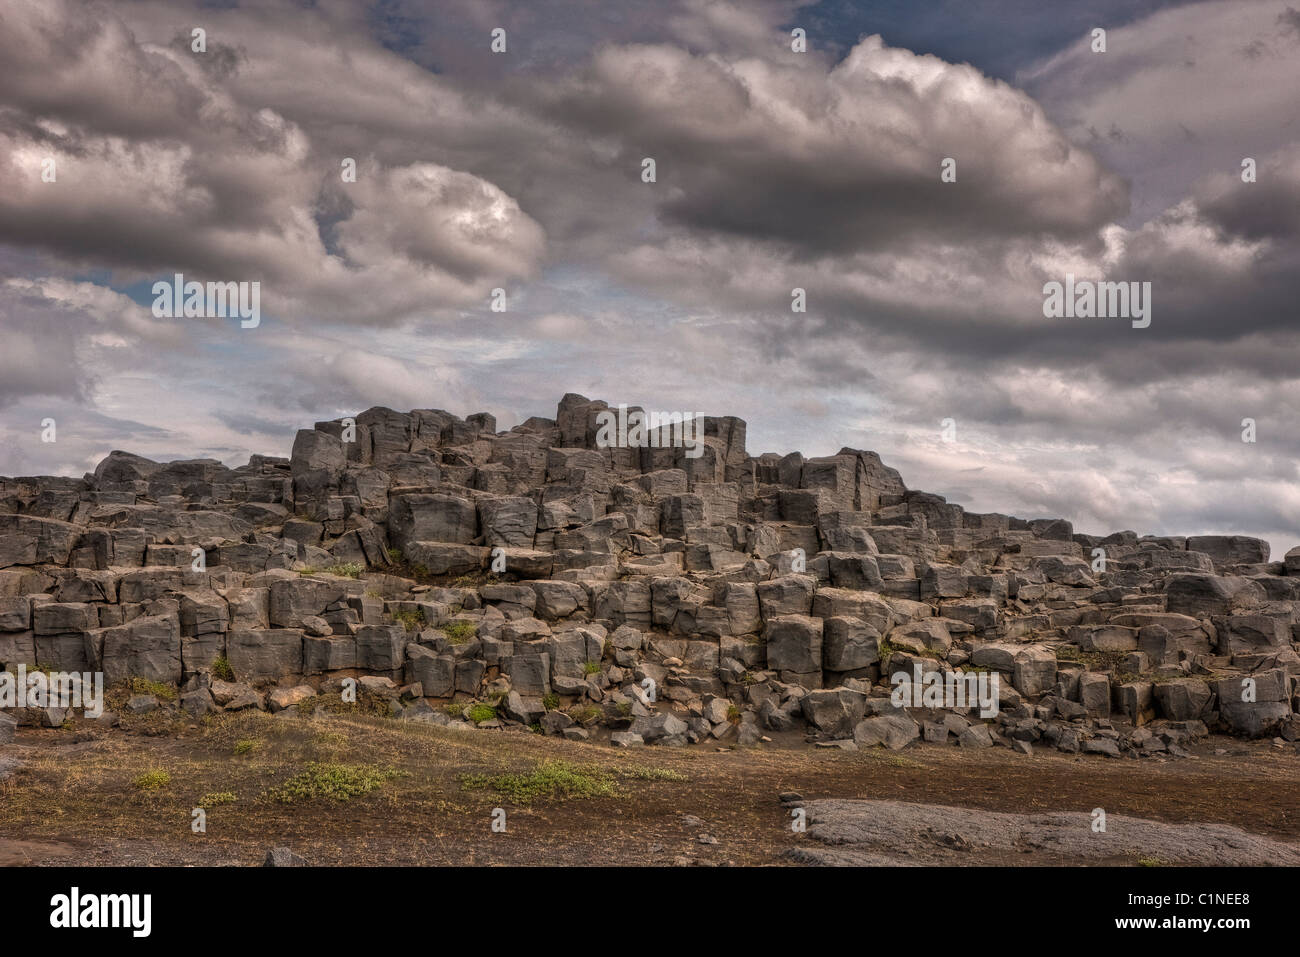 Large basalt volcanic rocks on the road to Dettifoss waterfall, Iceland - Stock Image